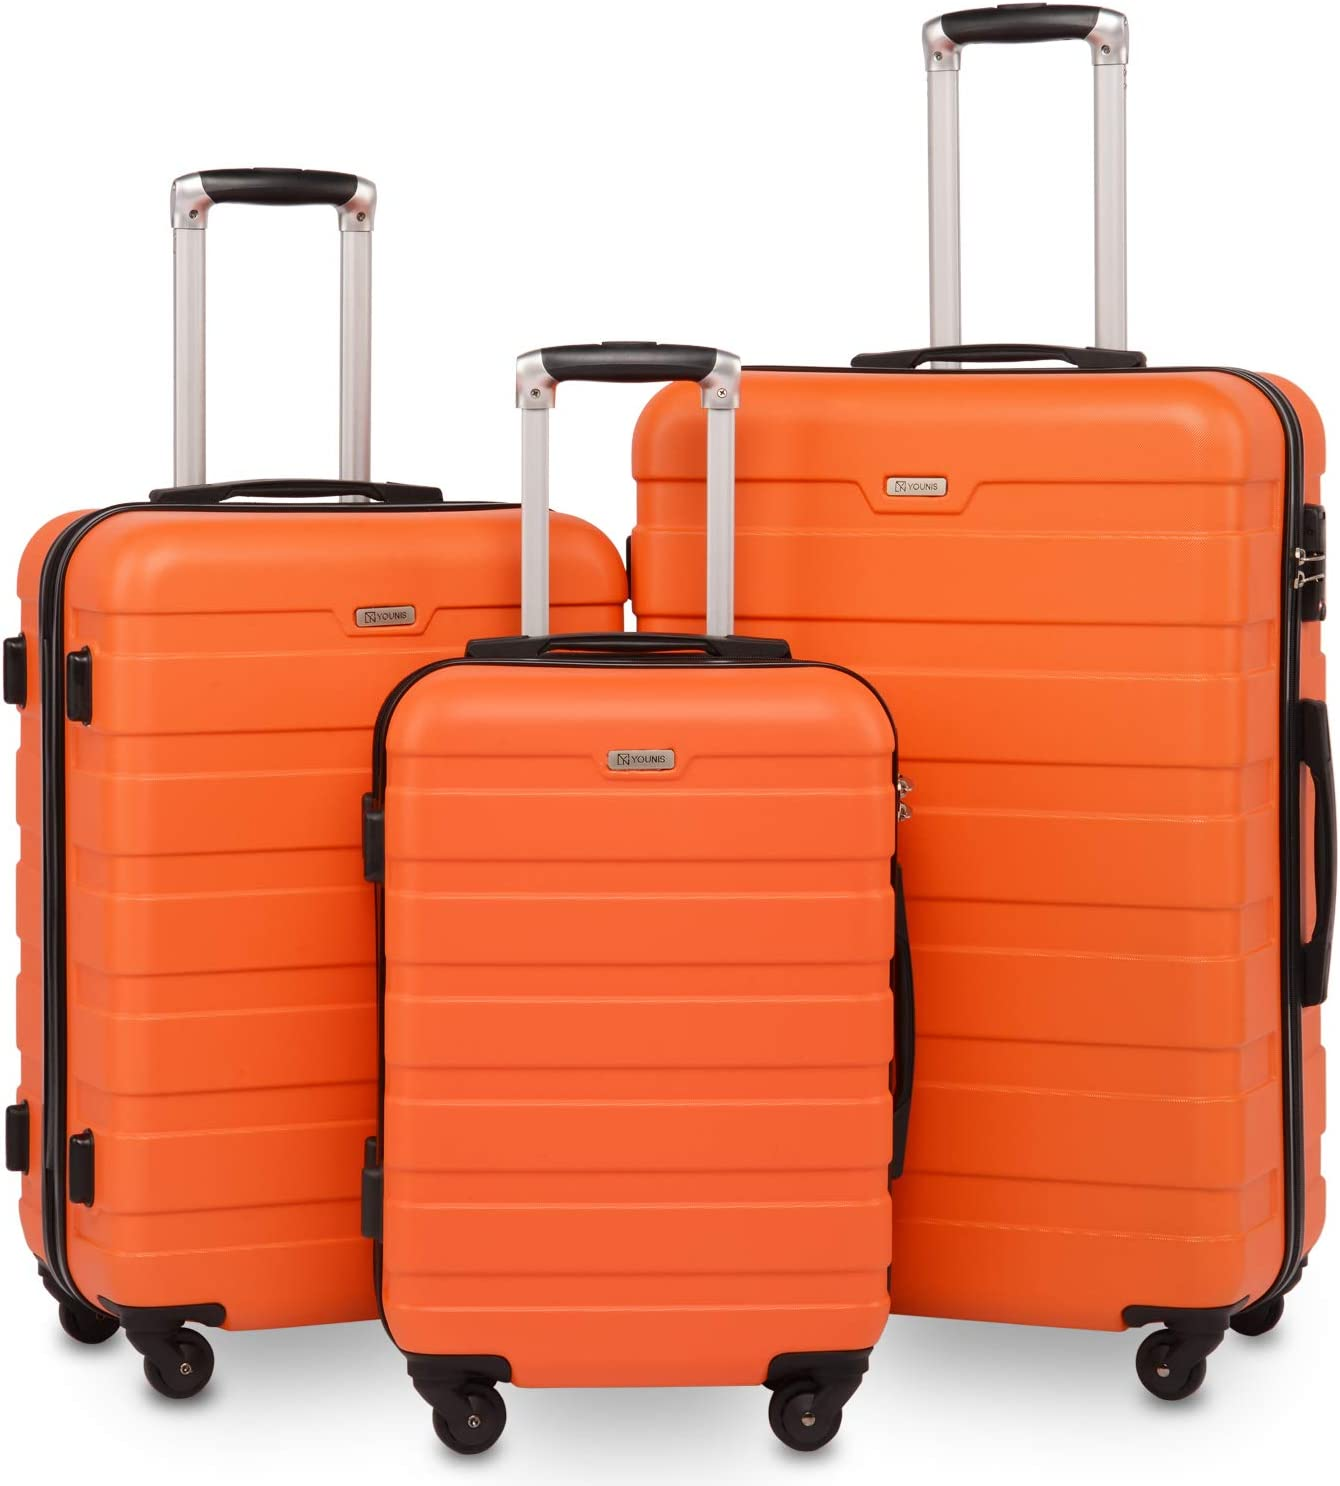 YOUNIS Luggage Suitcase 3 Piece Set, Expandable Handle, Hardside Lightweight Spinner Suitcase, TSA Locks Lightweight Spinner Wheels, Orange